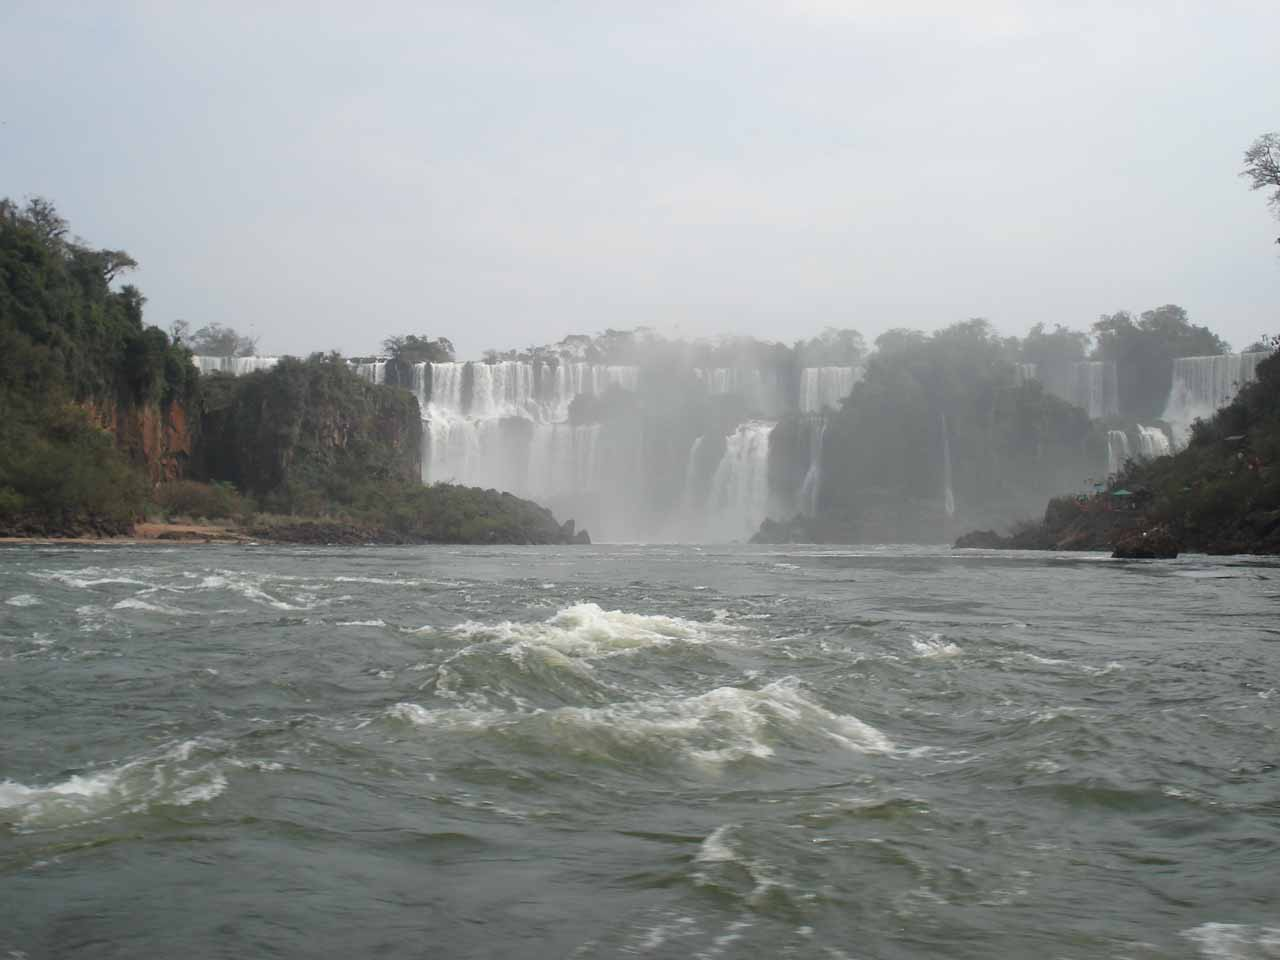 Looking towards the Argentina waterfalls from the middle of the river